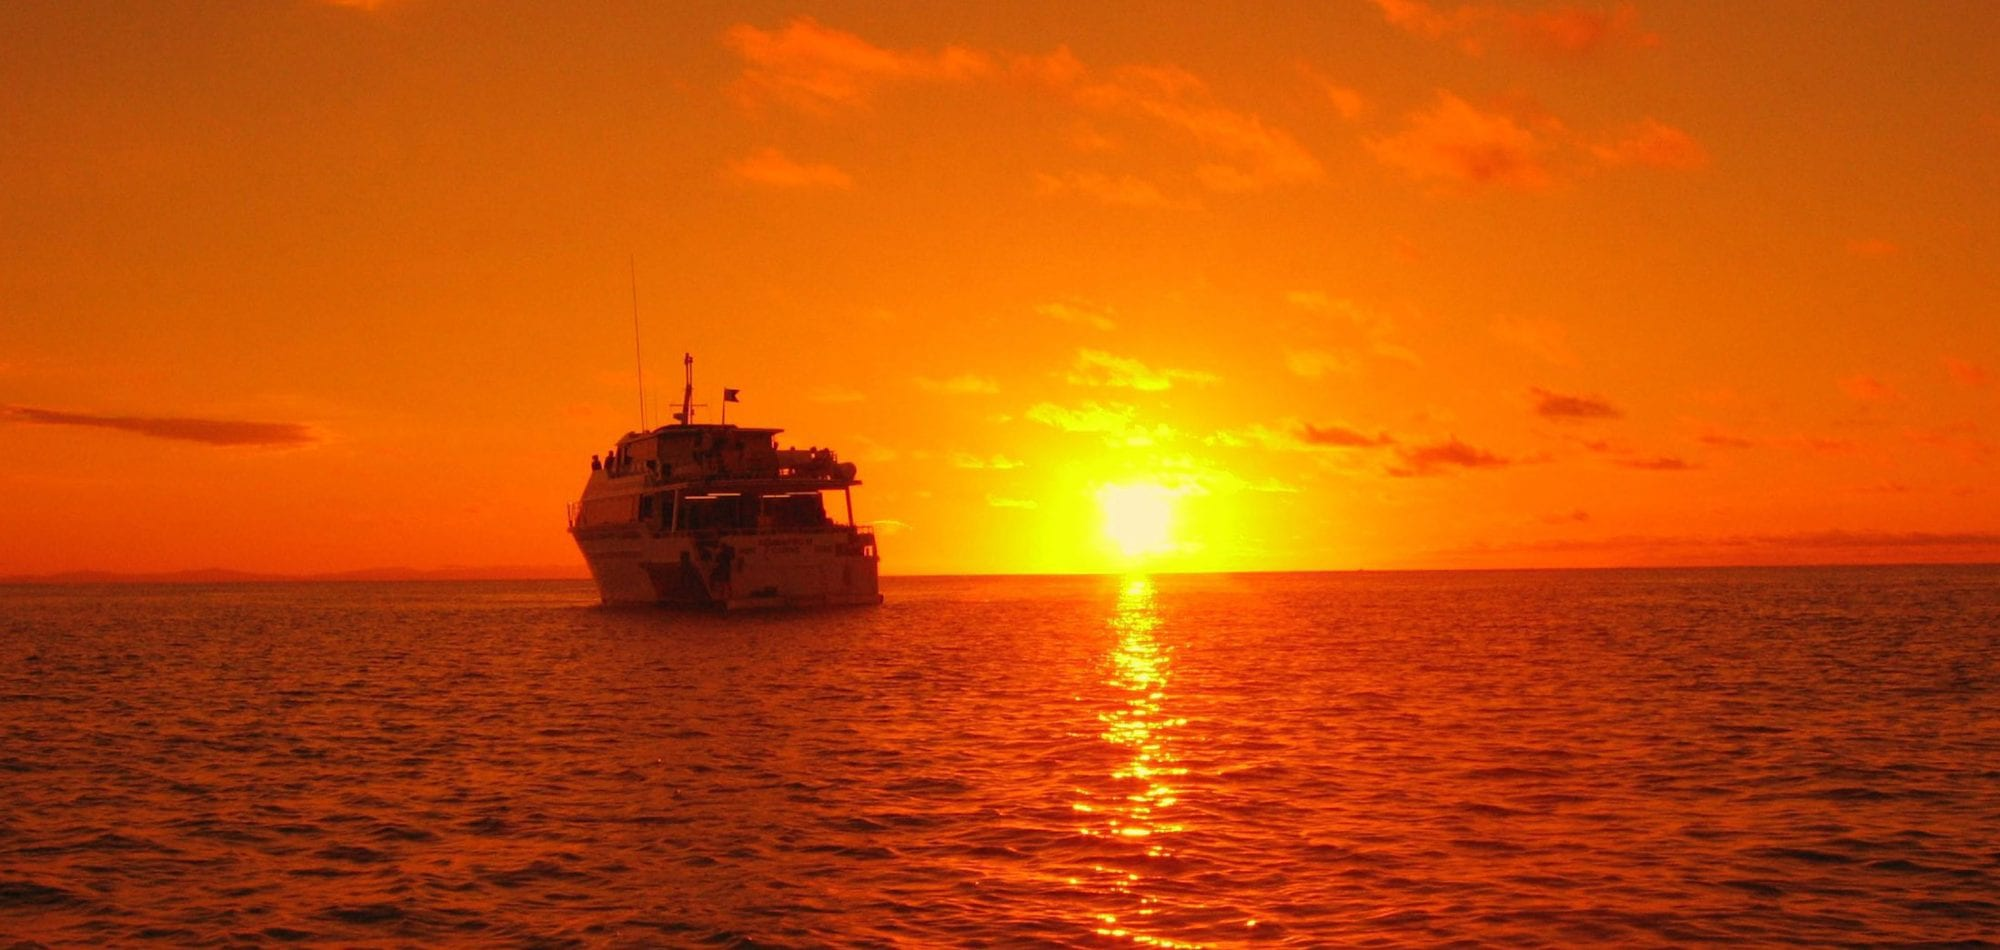 Cairns liveaboard scuba diving - sun setting behind Scubapro dive boat on the Great Barrier Reef